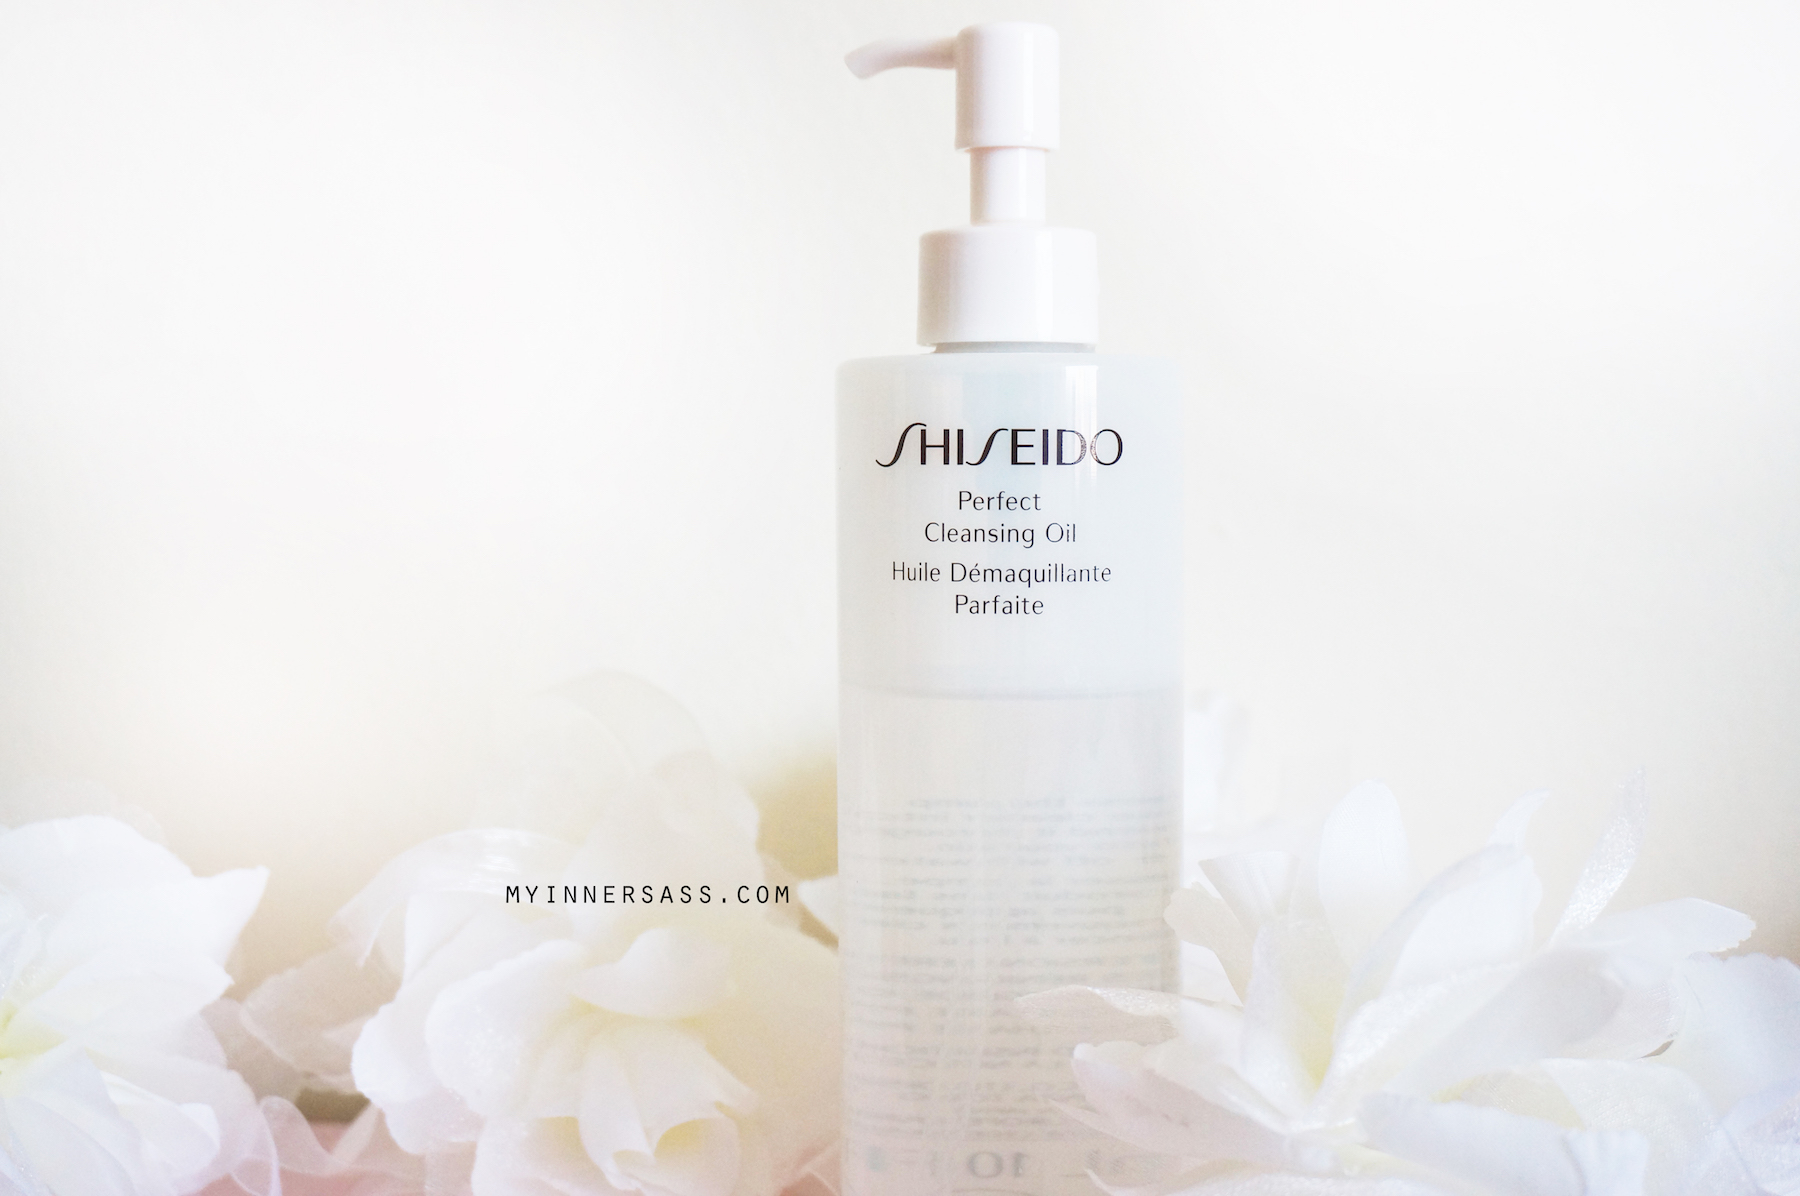 shiseido-perfect-cleansing-oil